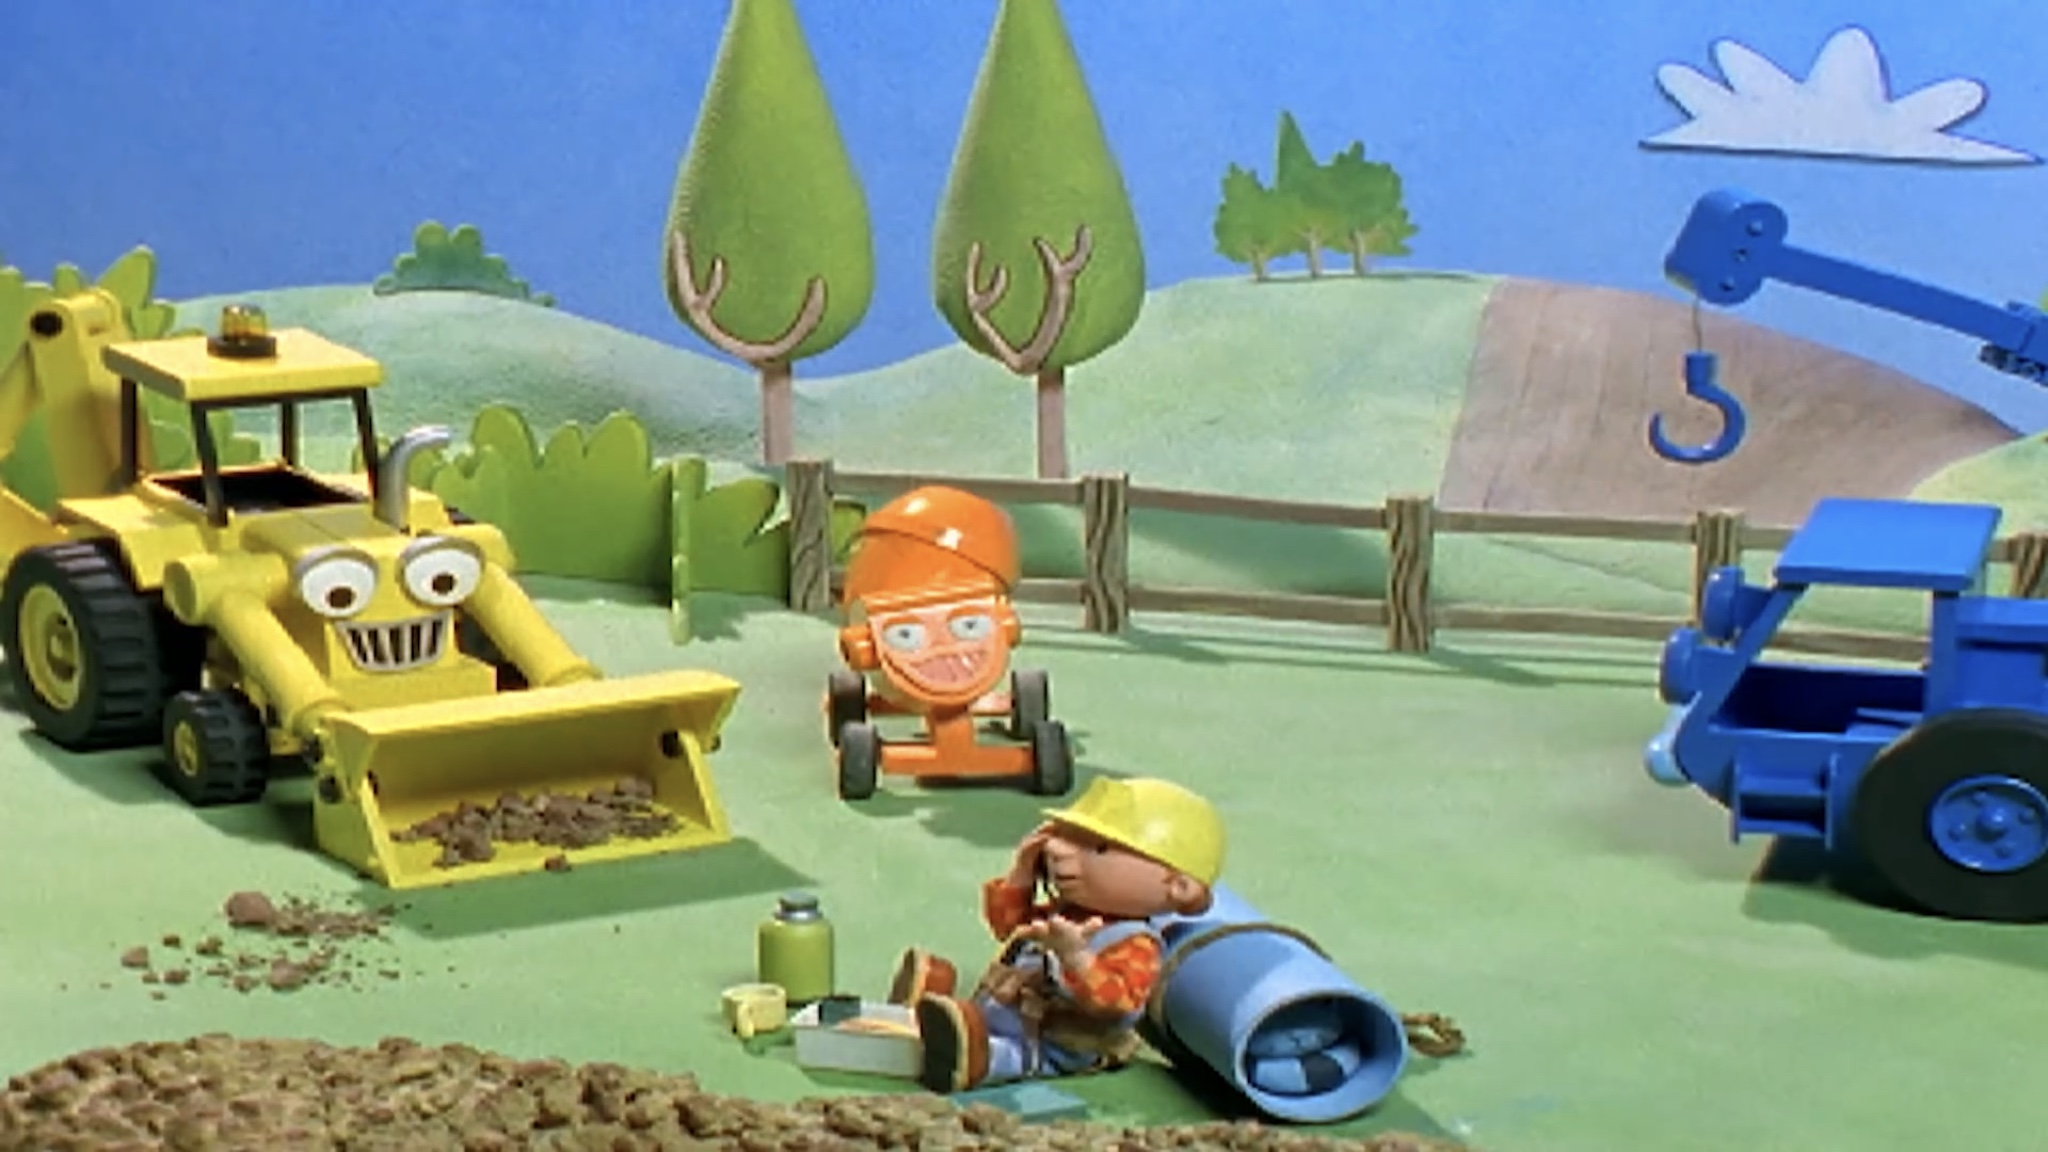 Bob the Builder episode list